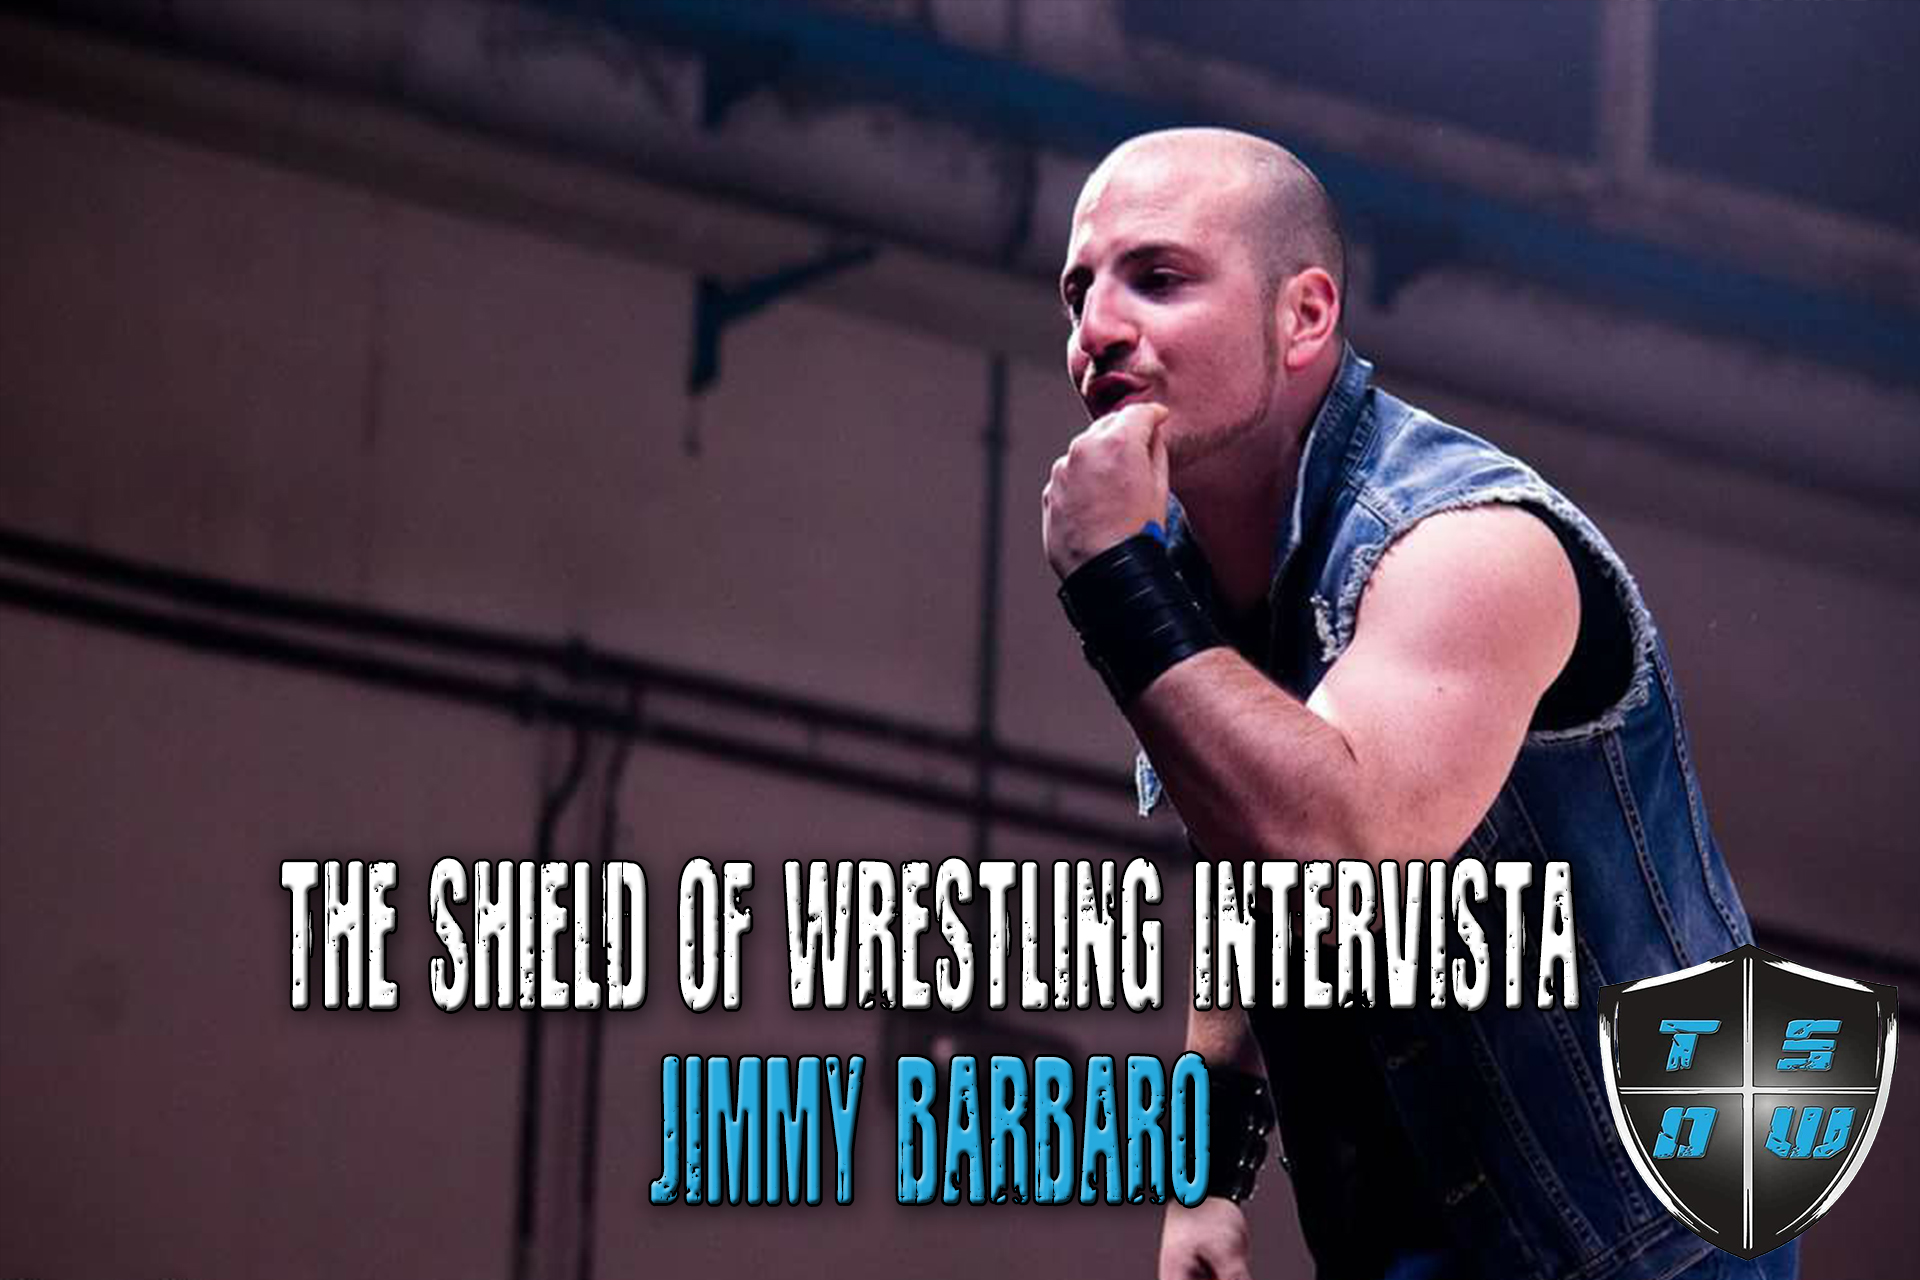 Intervista a Jimmy Barbaro